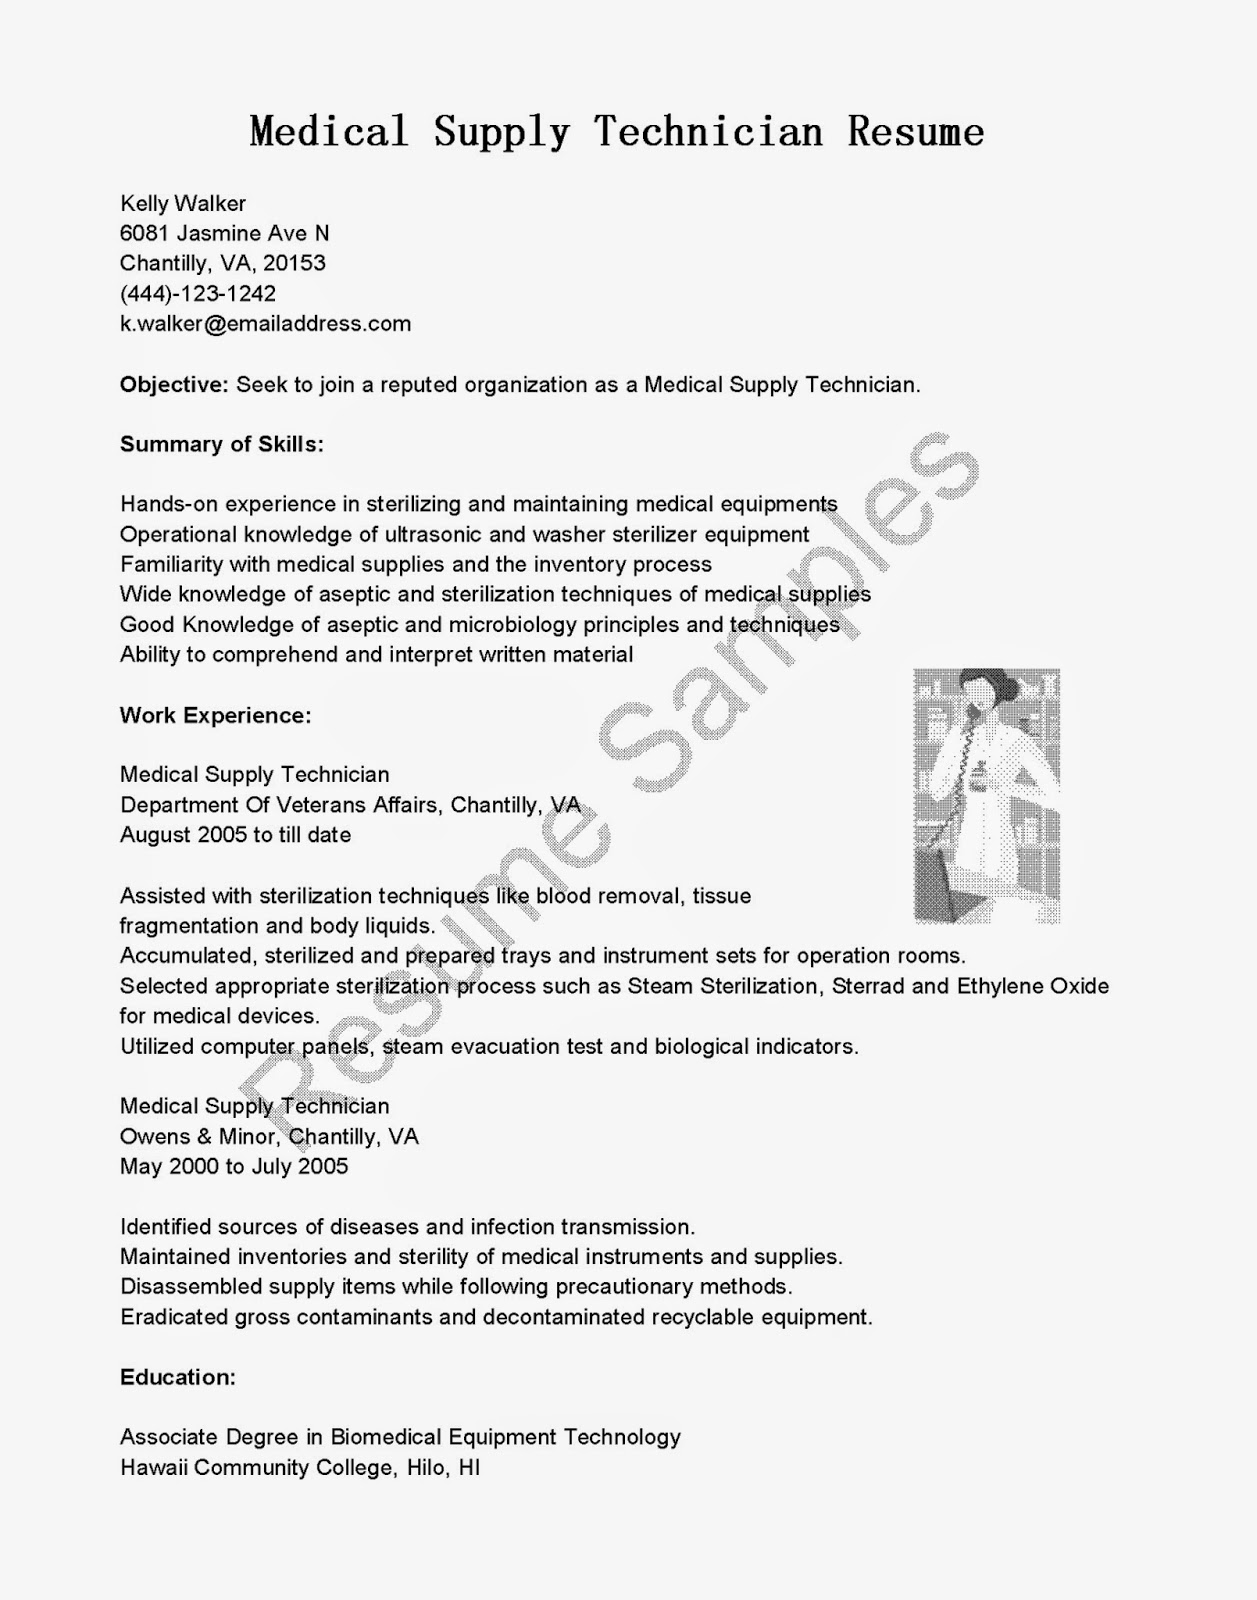 Resume Virginia Tech Resume Samples Medical Supply Technician Resume Sample